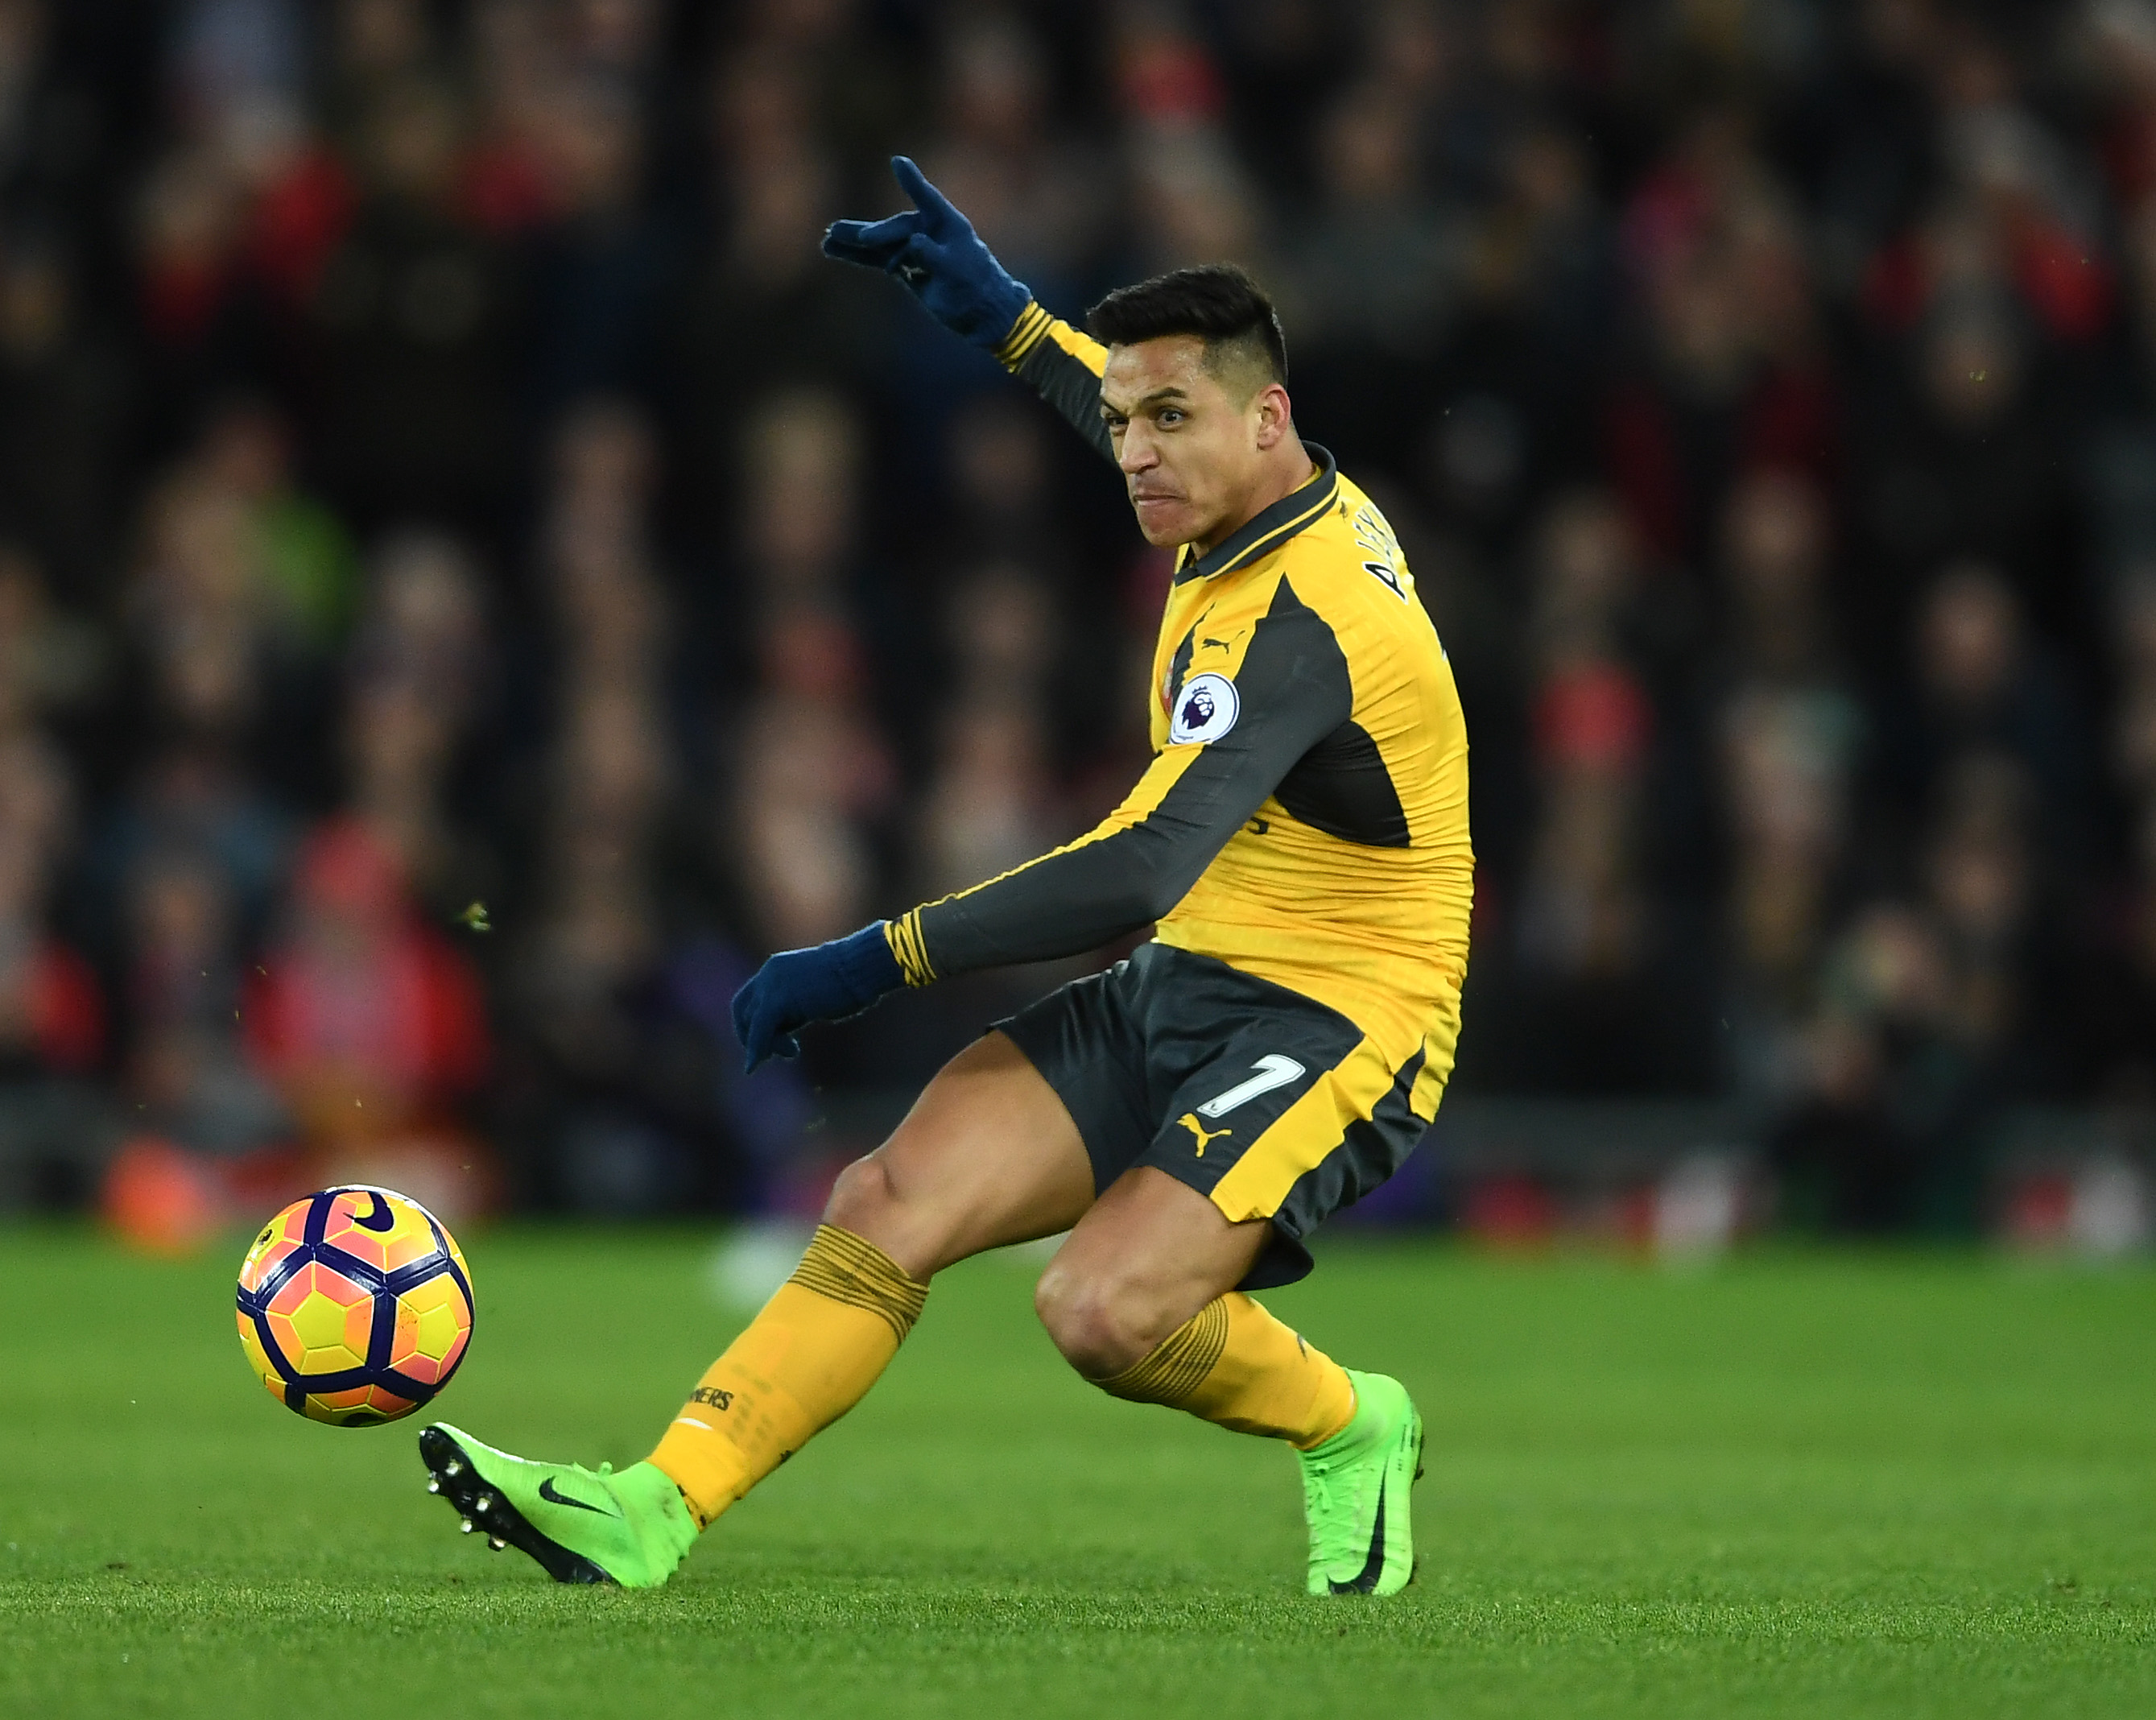 Alexis Sanchez is one of the toughest players to face in the Premier League, says Rio Ferdinand